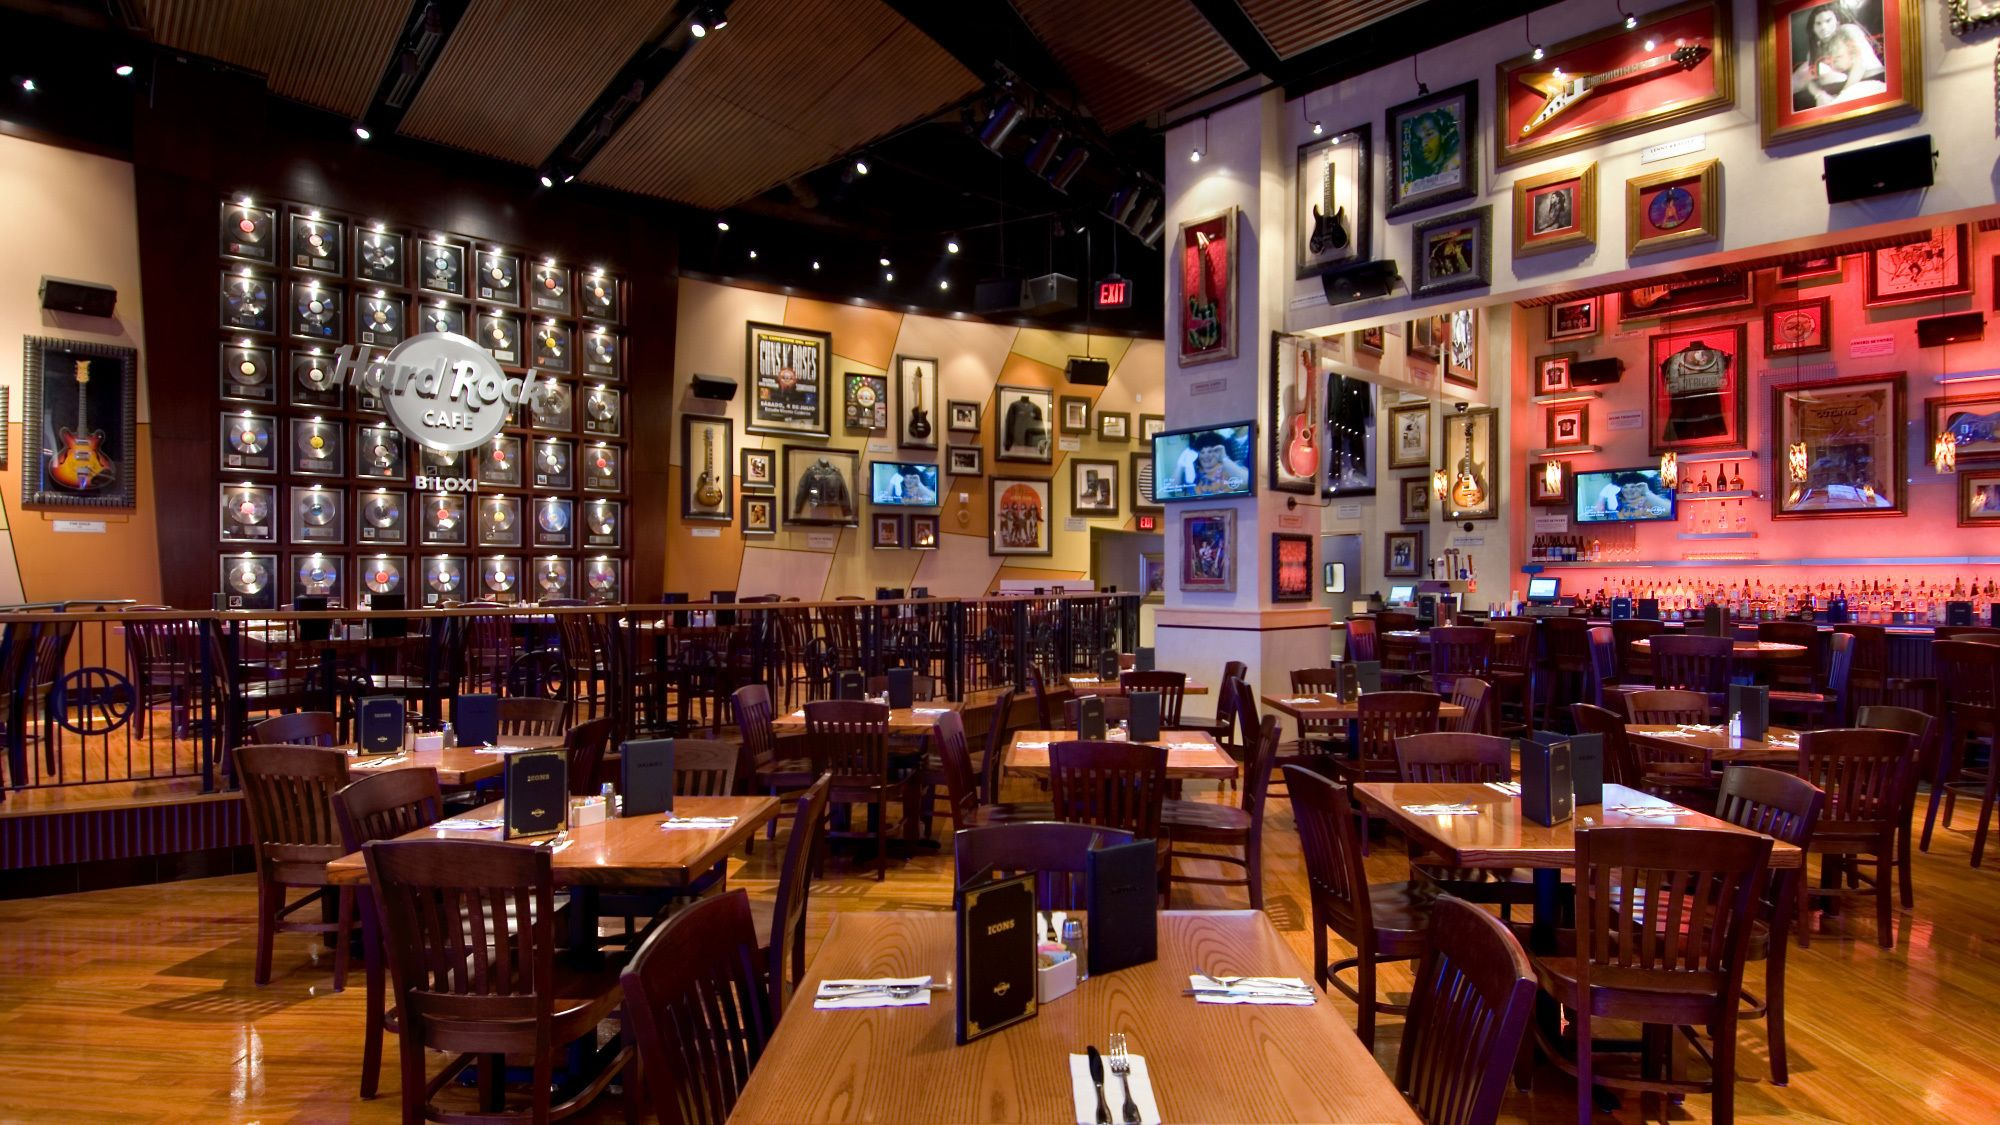 Dining at Hard Rock Cafe Biloxi with Priority Seating